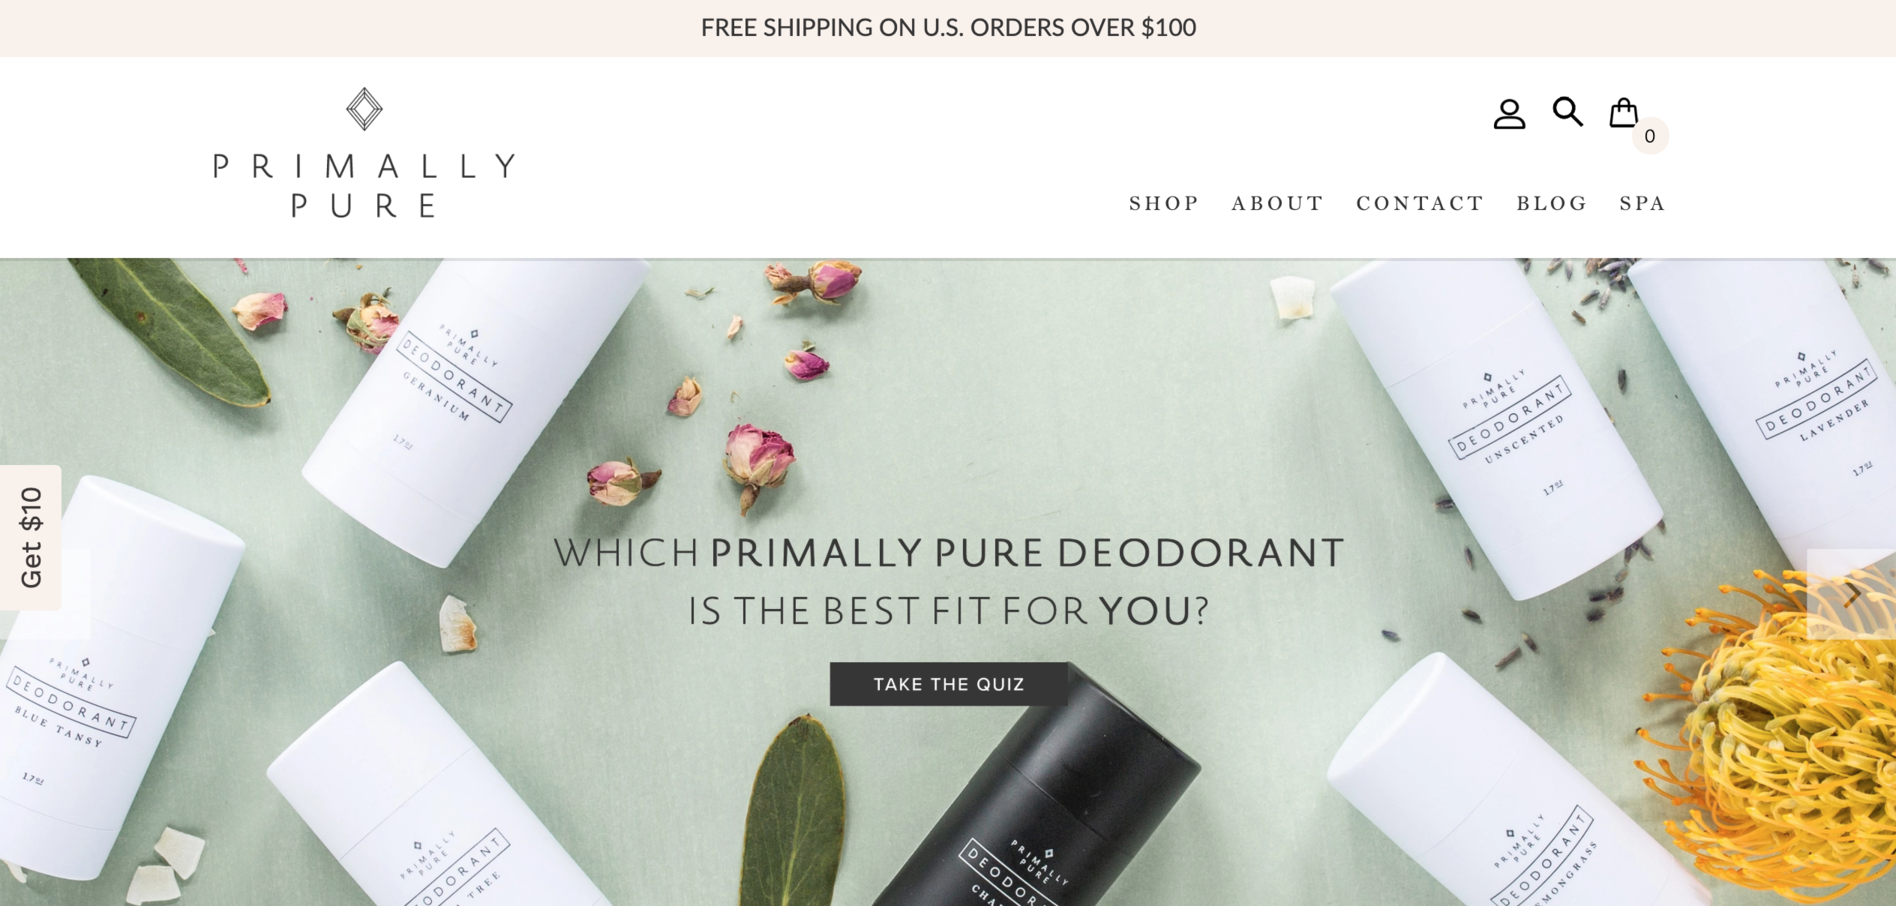 Primarily Pure skincare brand using Refersion for their ecommerce site